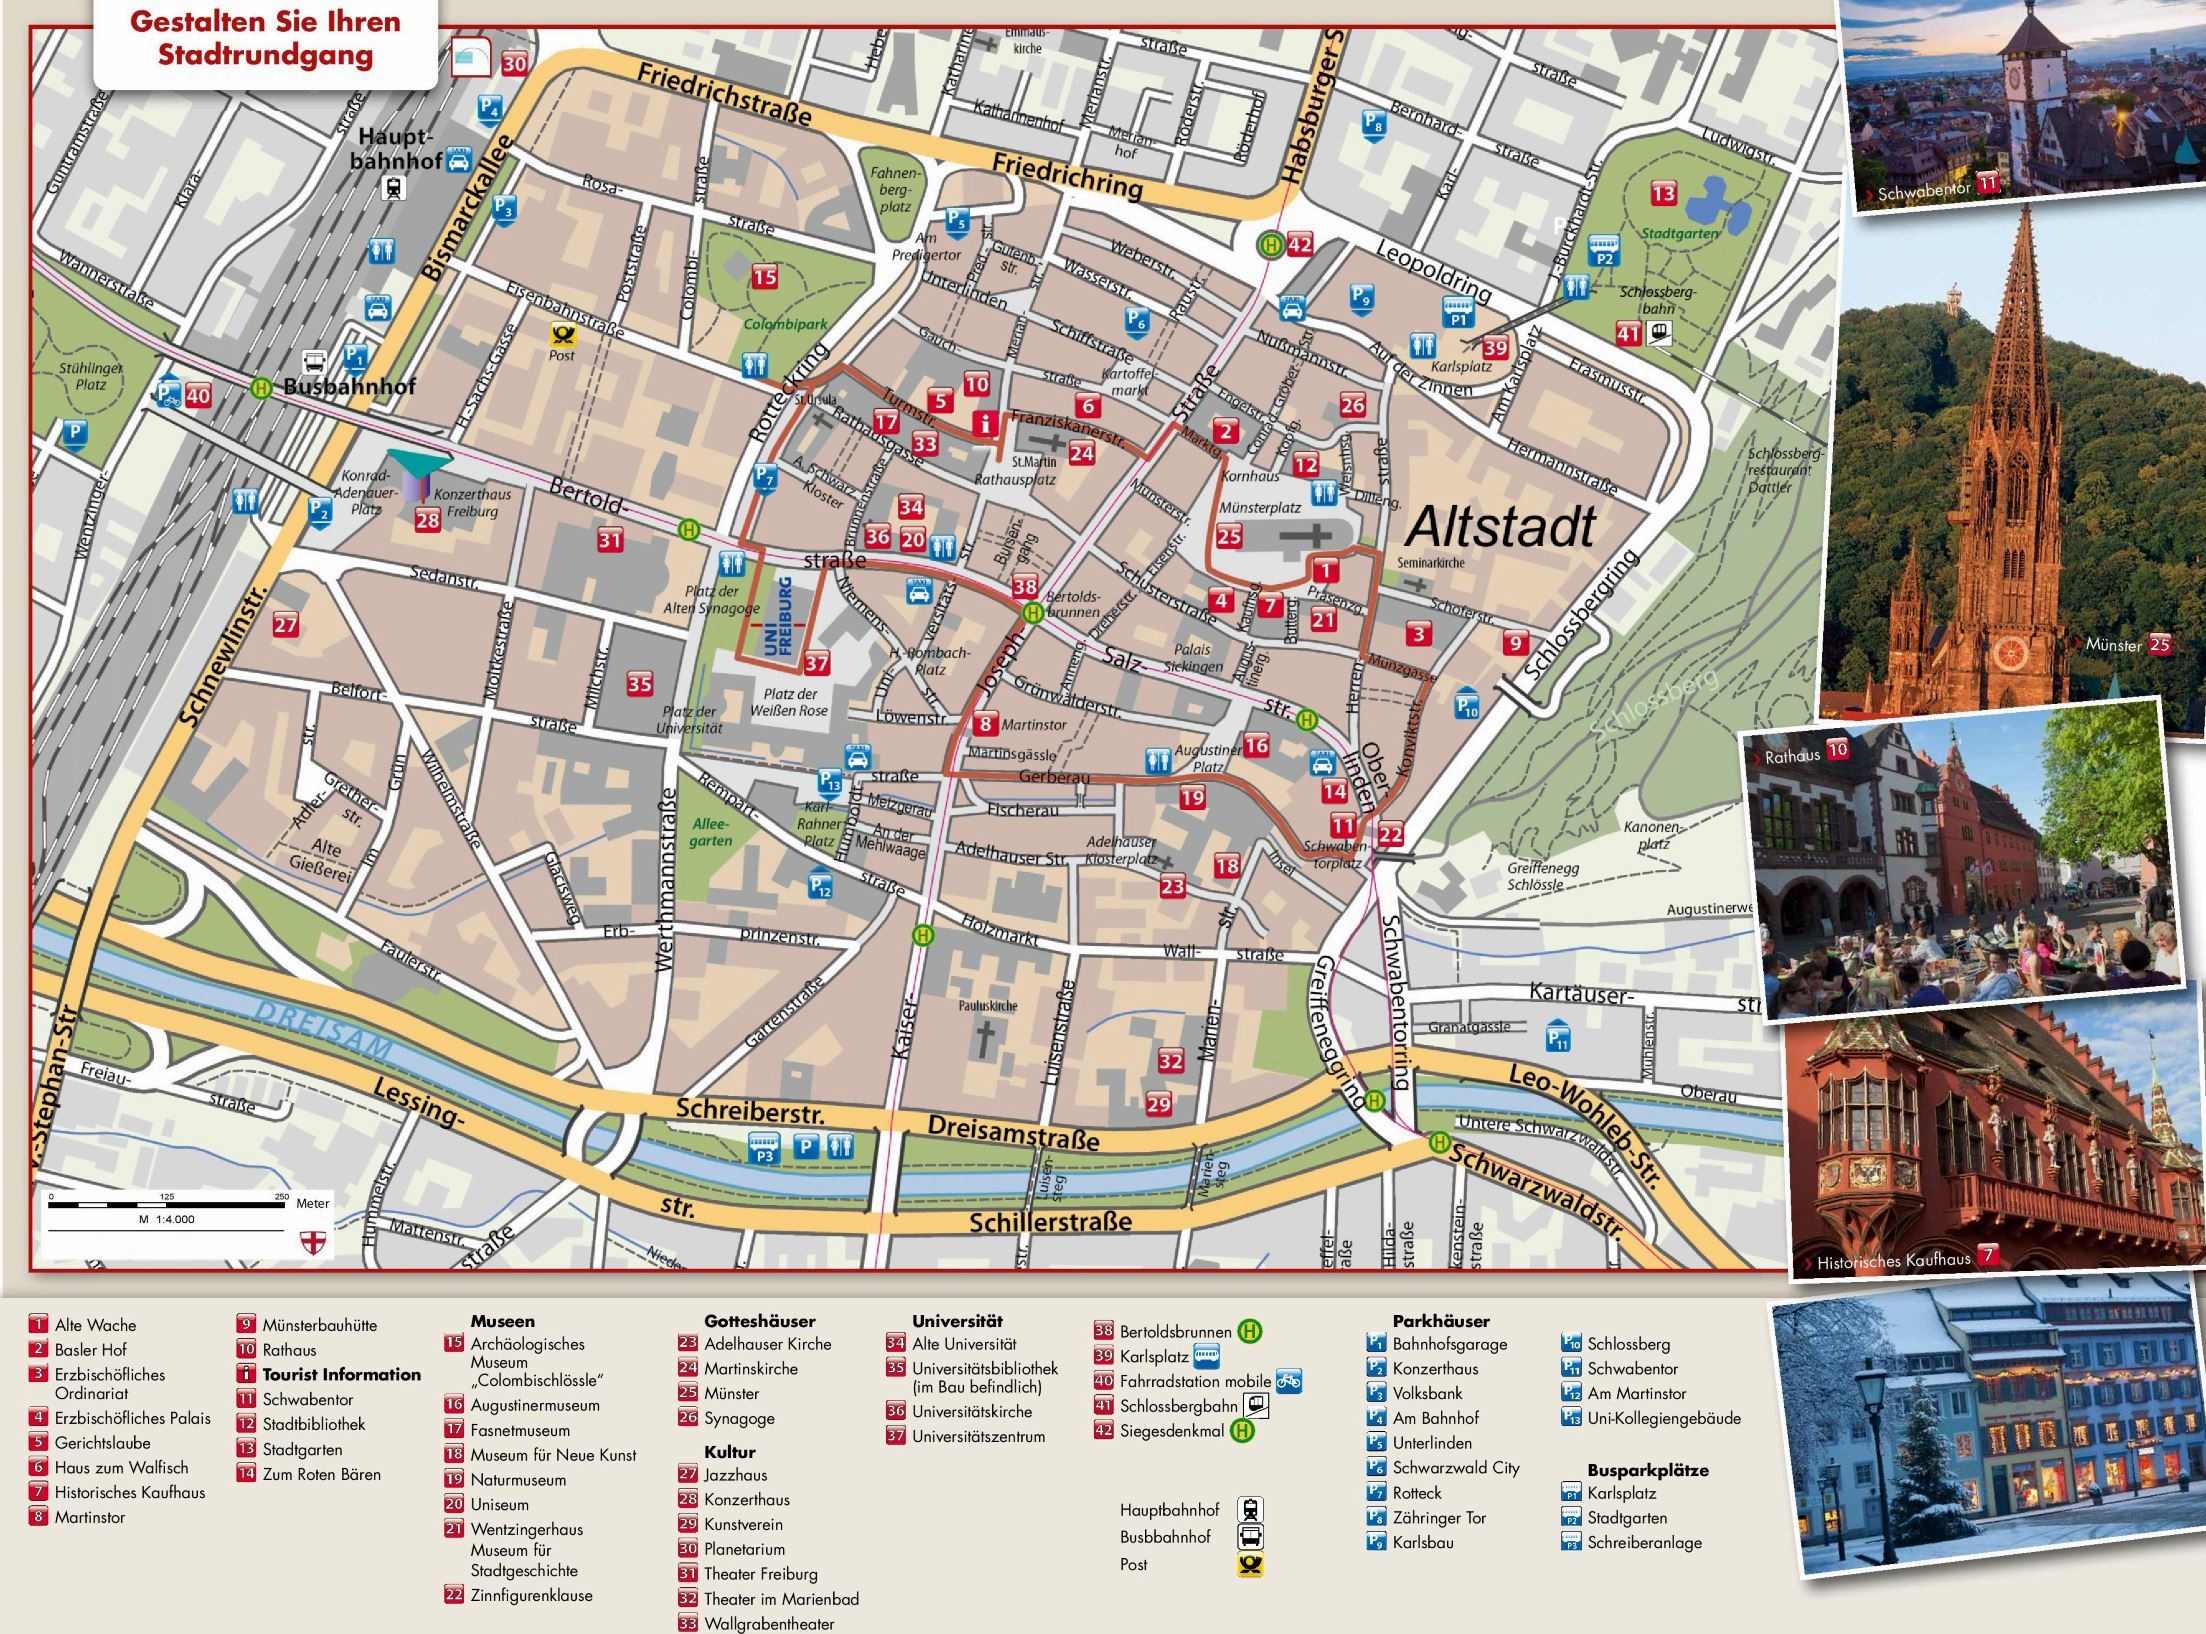 Large Freiburg im Breisgau Maps for Free Download and Print High